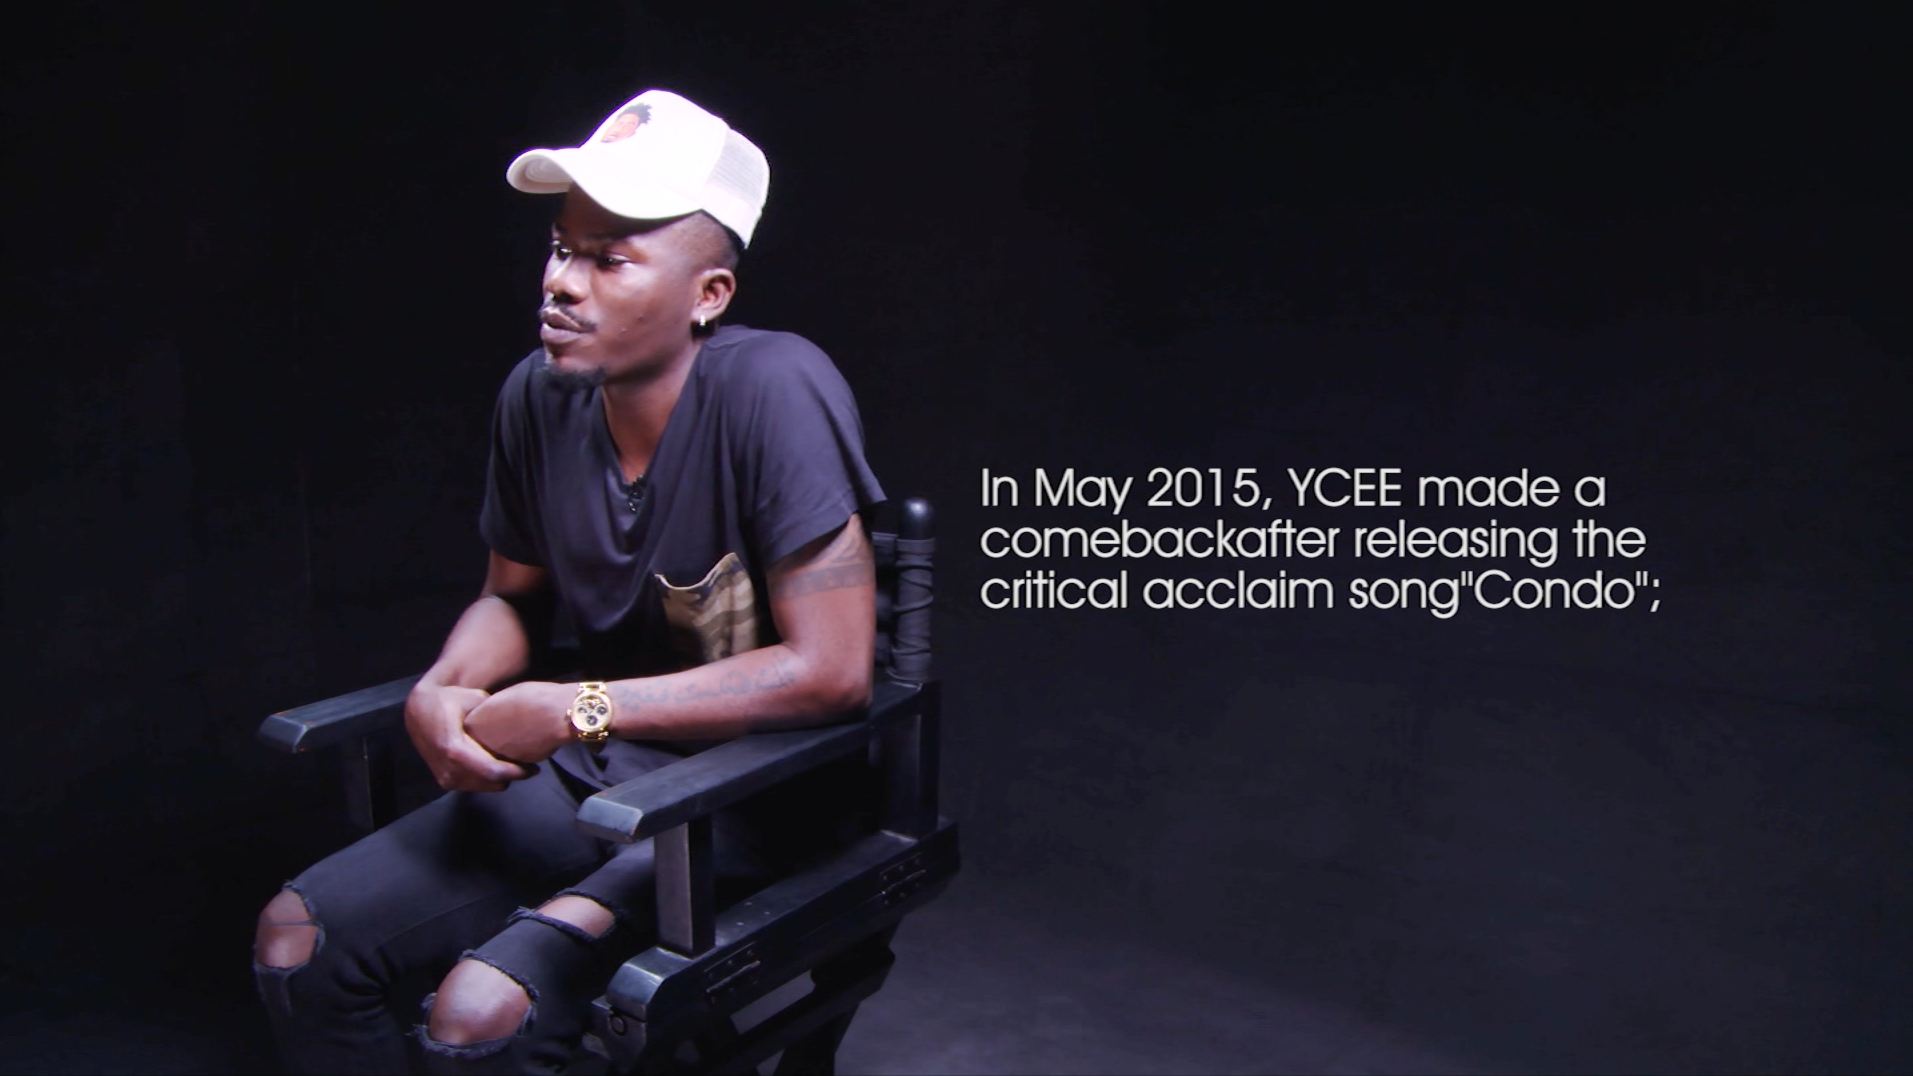 'I think Weezy (Lil Wayne) is the Greatest Rapper Alive' – YCEE on #SoundcityStarHost.